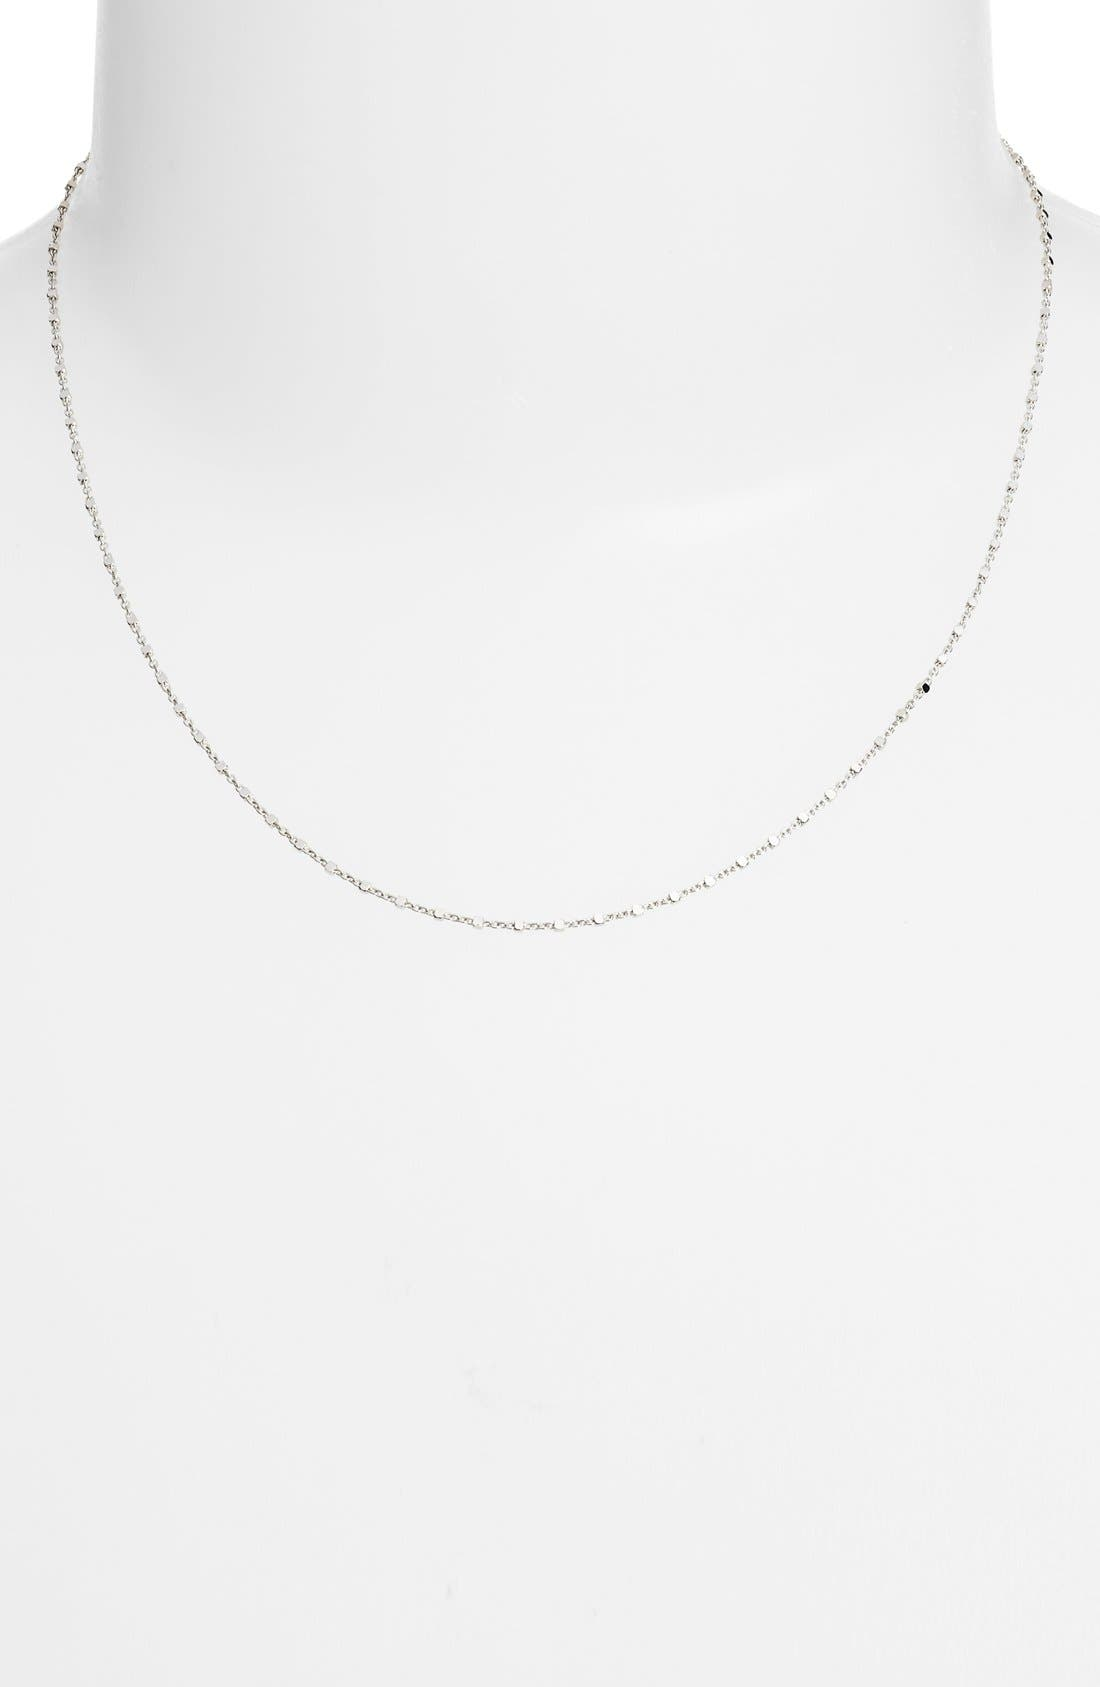 Beaded Chain Collar Necklace,                             Alternate thumbnail 2, color,                             White Gold